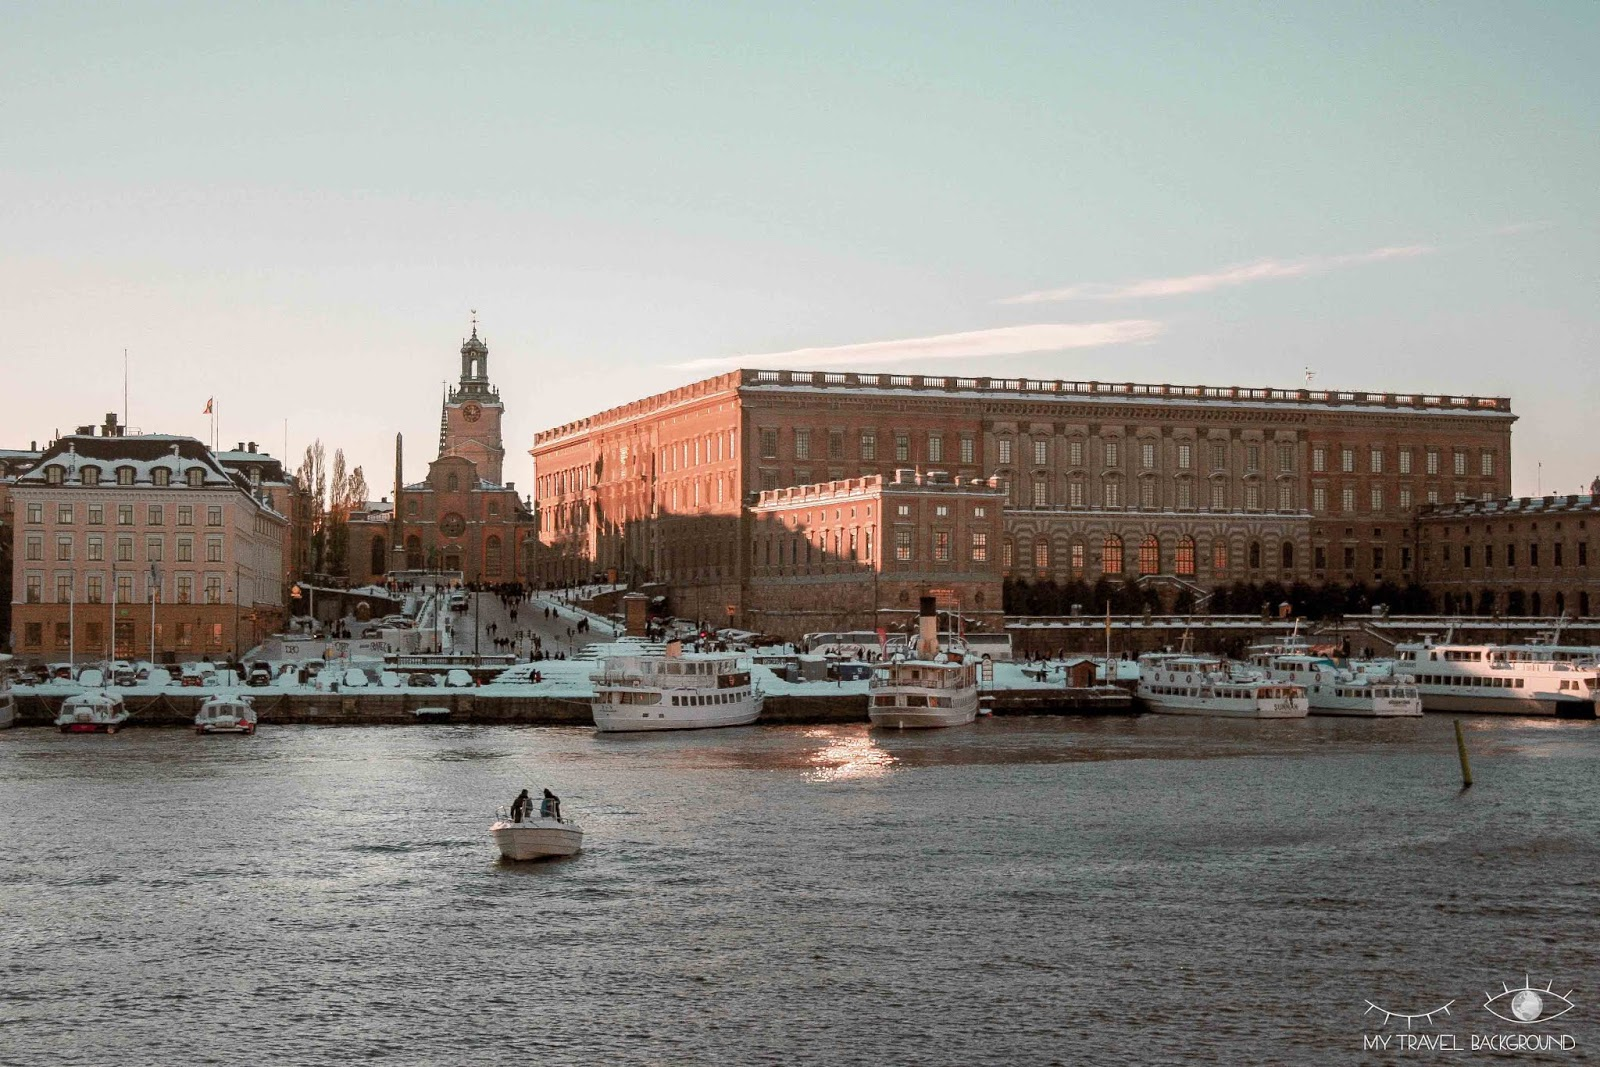 My Travel Background : Visiter Stockholm, mes immanquables - Palais Royal